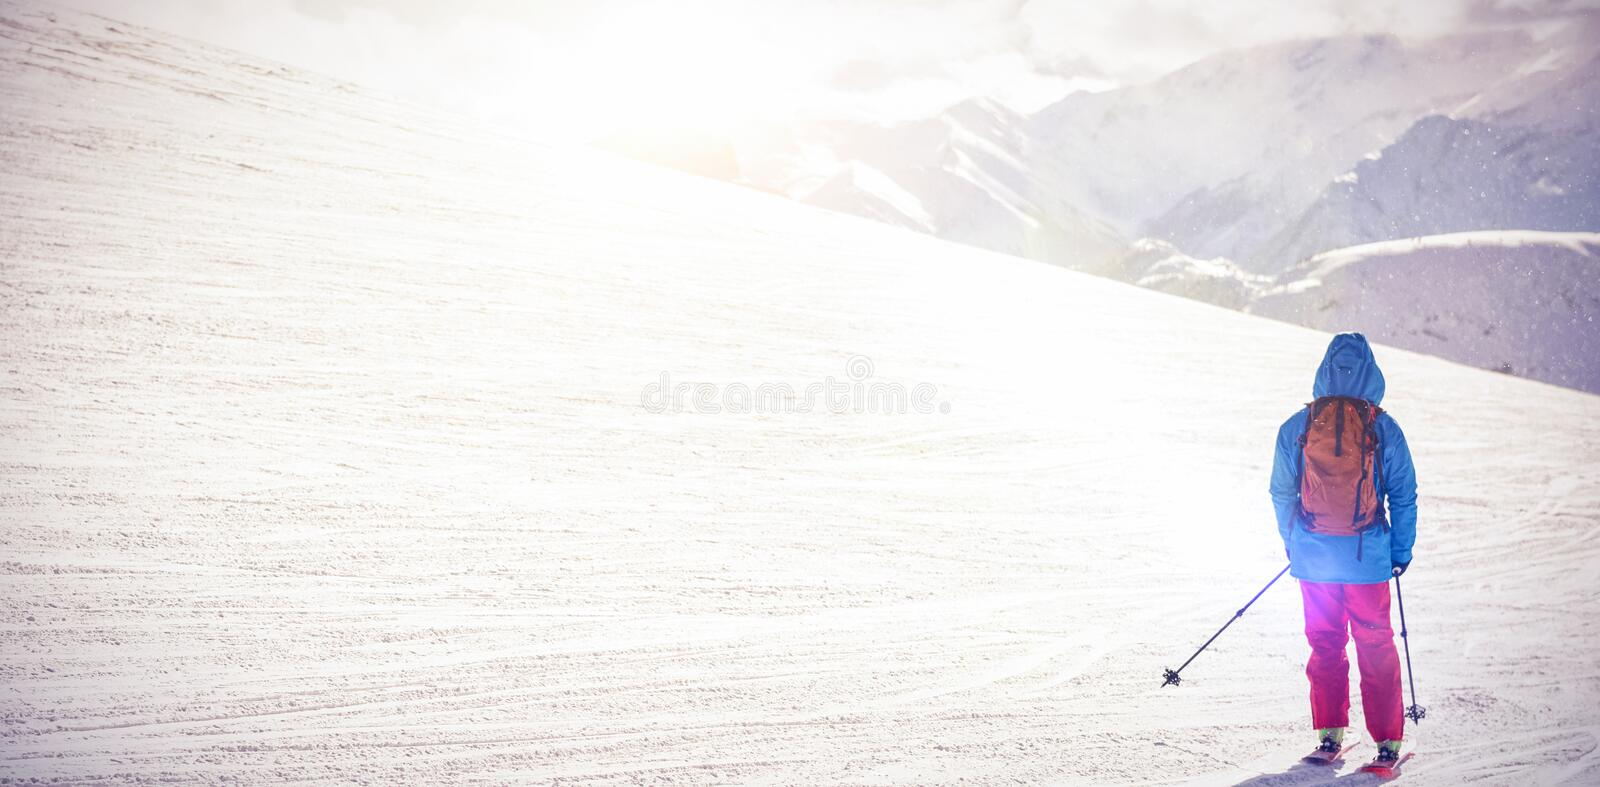 Skier skiing on snow covered mountains. Rear view of skier skiing on snow covered mountains royalty free stock photo